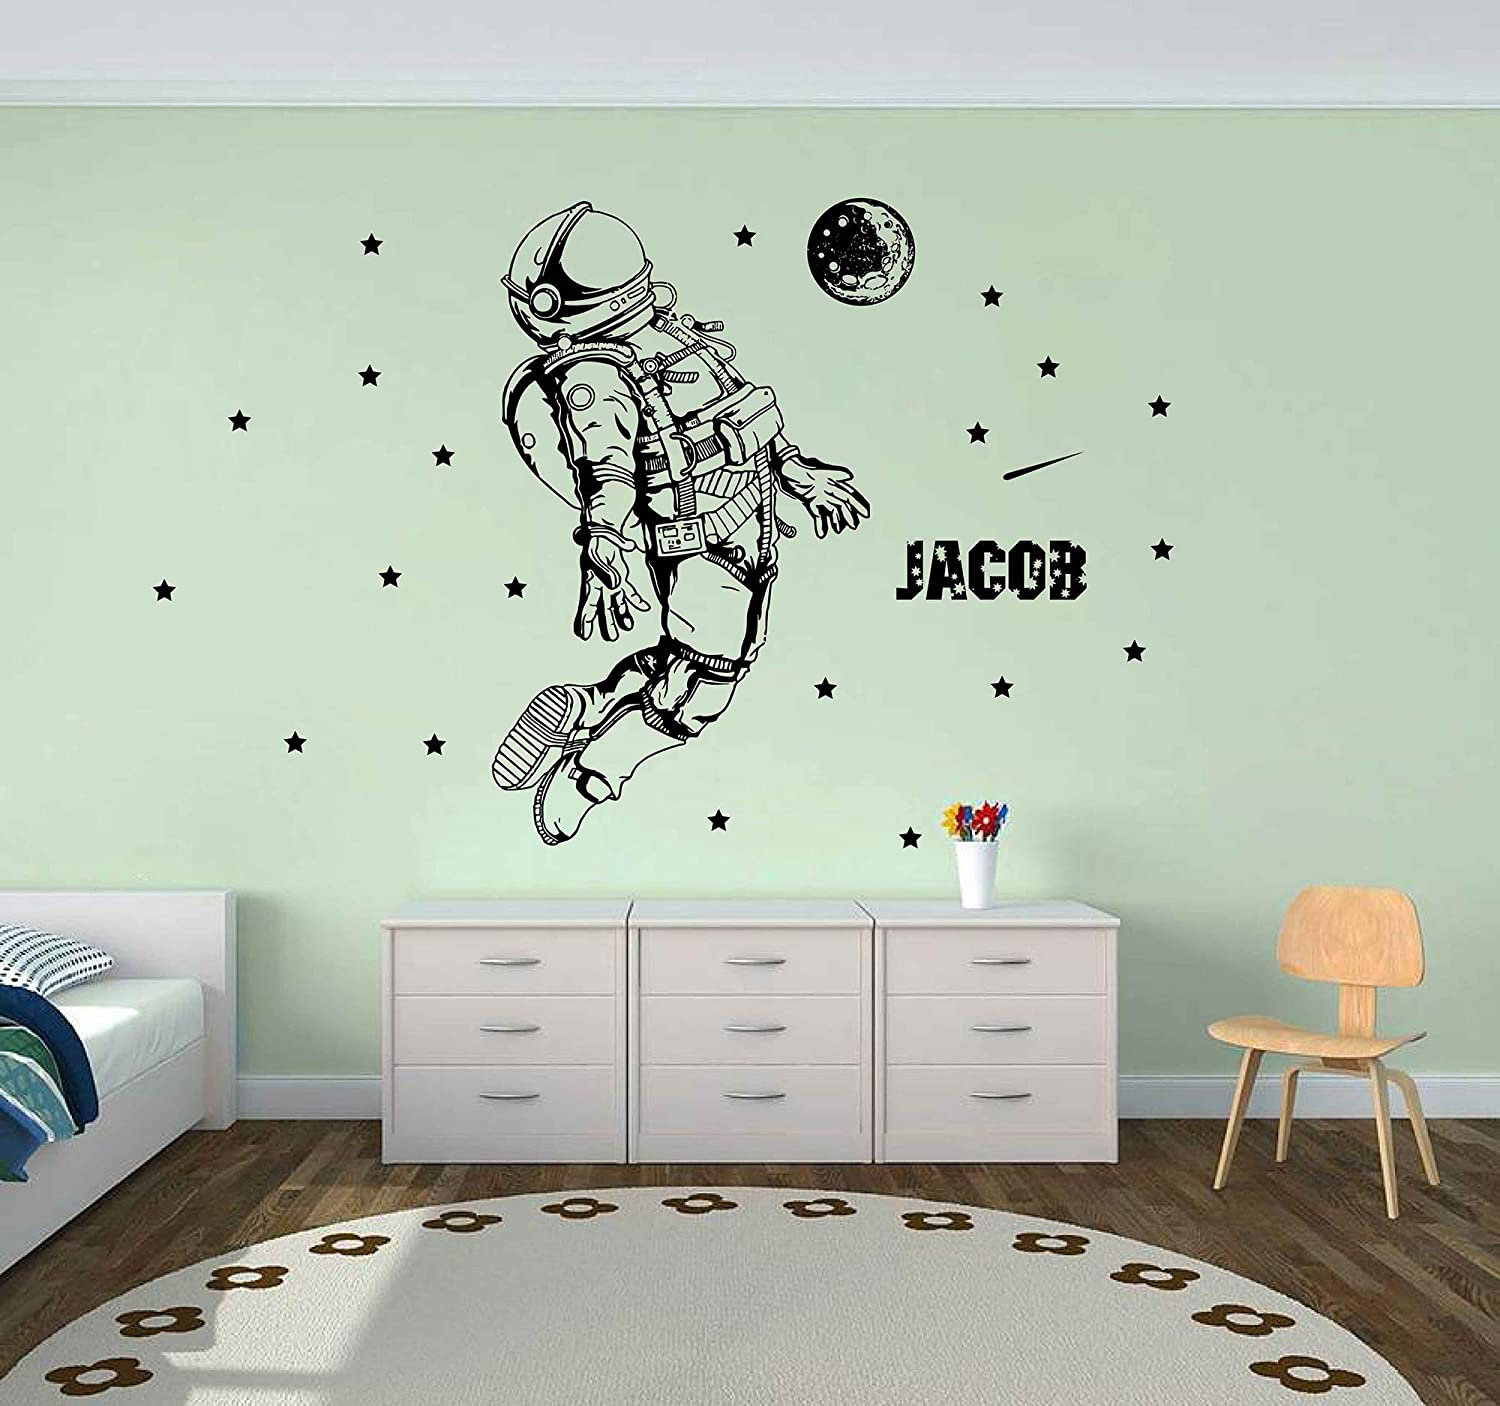 Astronaut Wall Sticker Cosmonaut Wall Decal Spaceman Personalized Name wall decor outer space for Boys Bedroom Playroom Decor Wall art ik3949